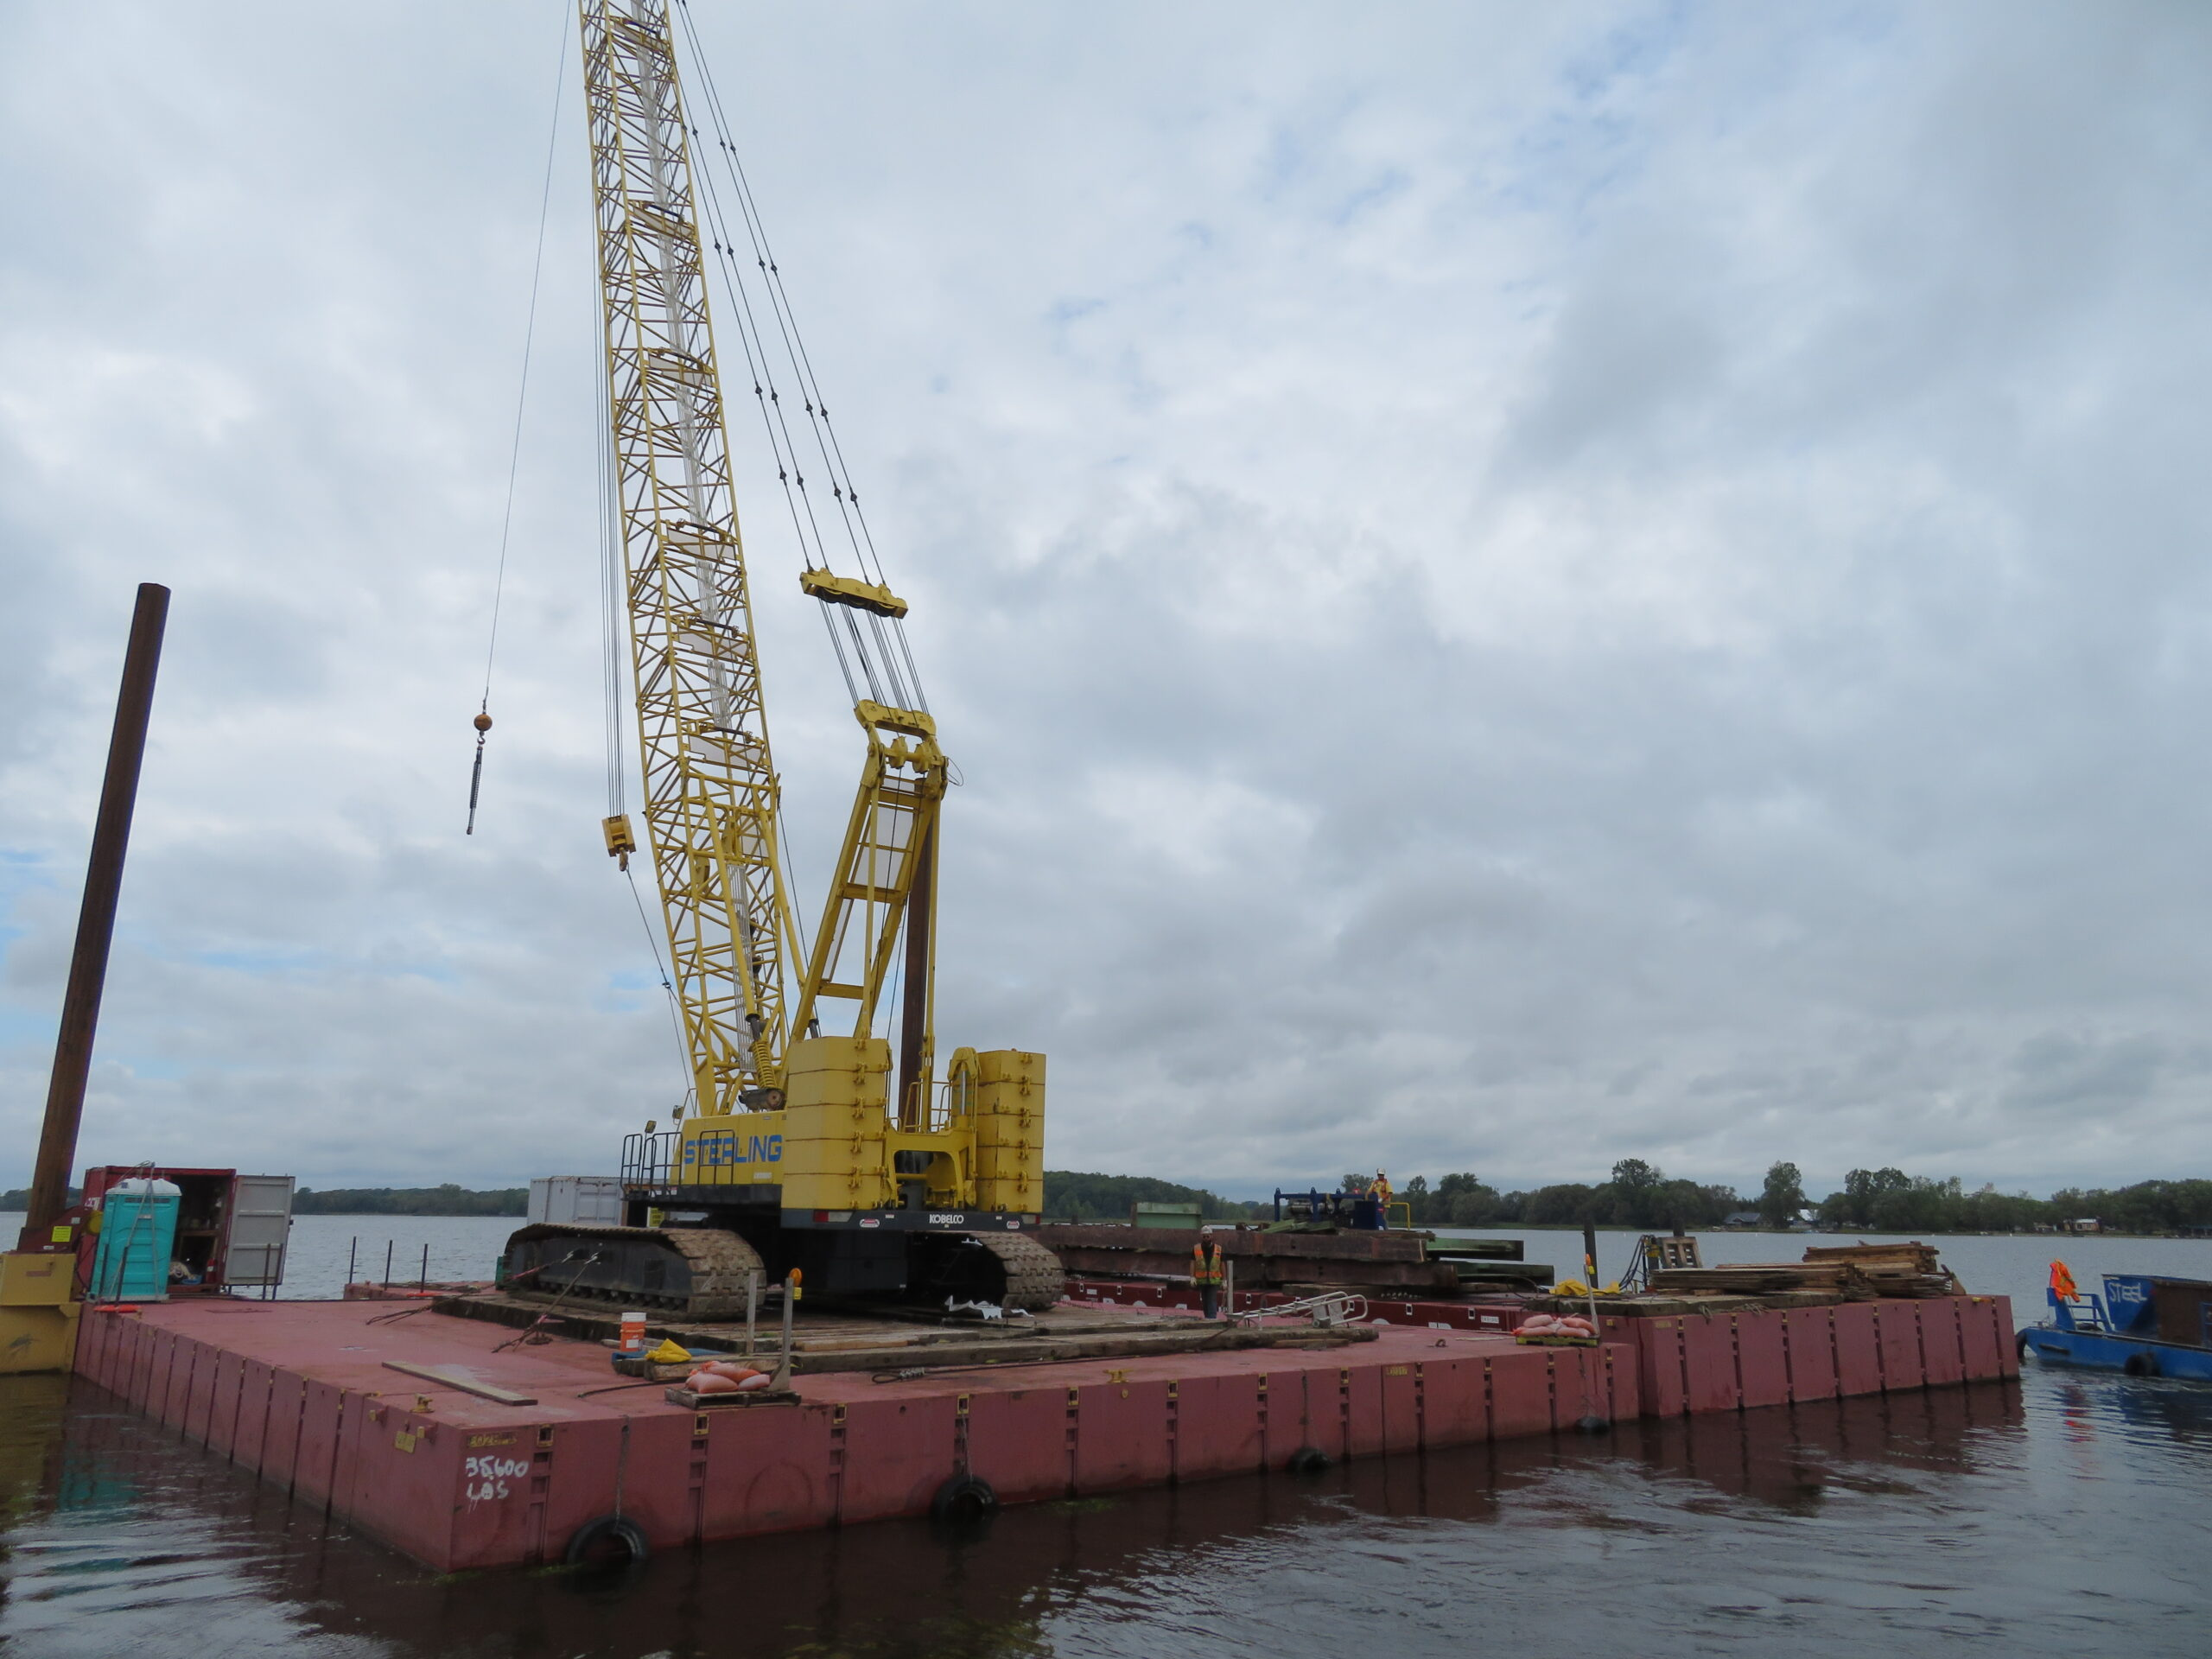 Removed girder sections being brought to the dock to be removed from the barge